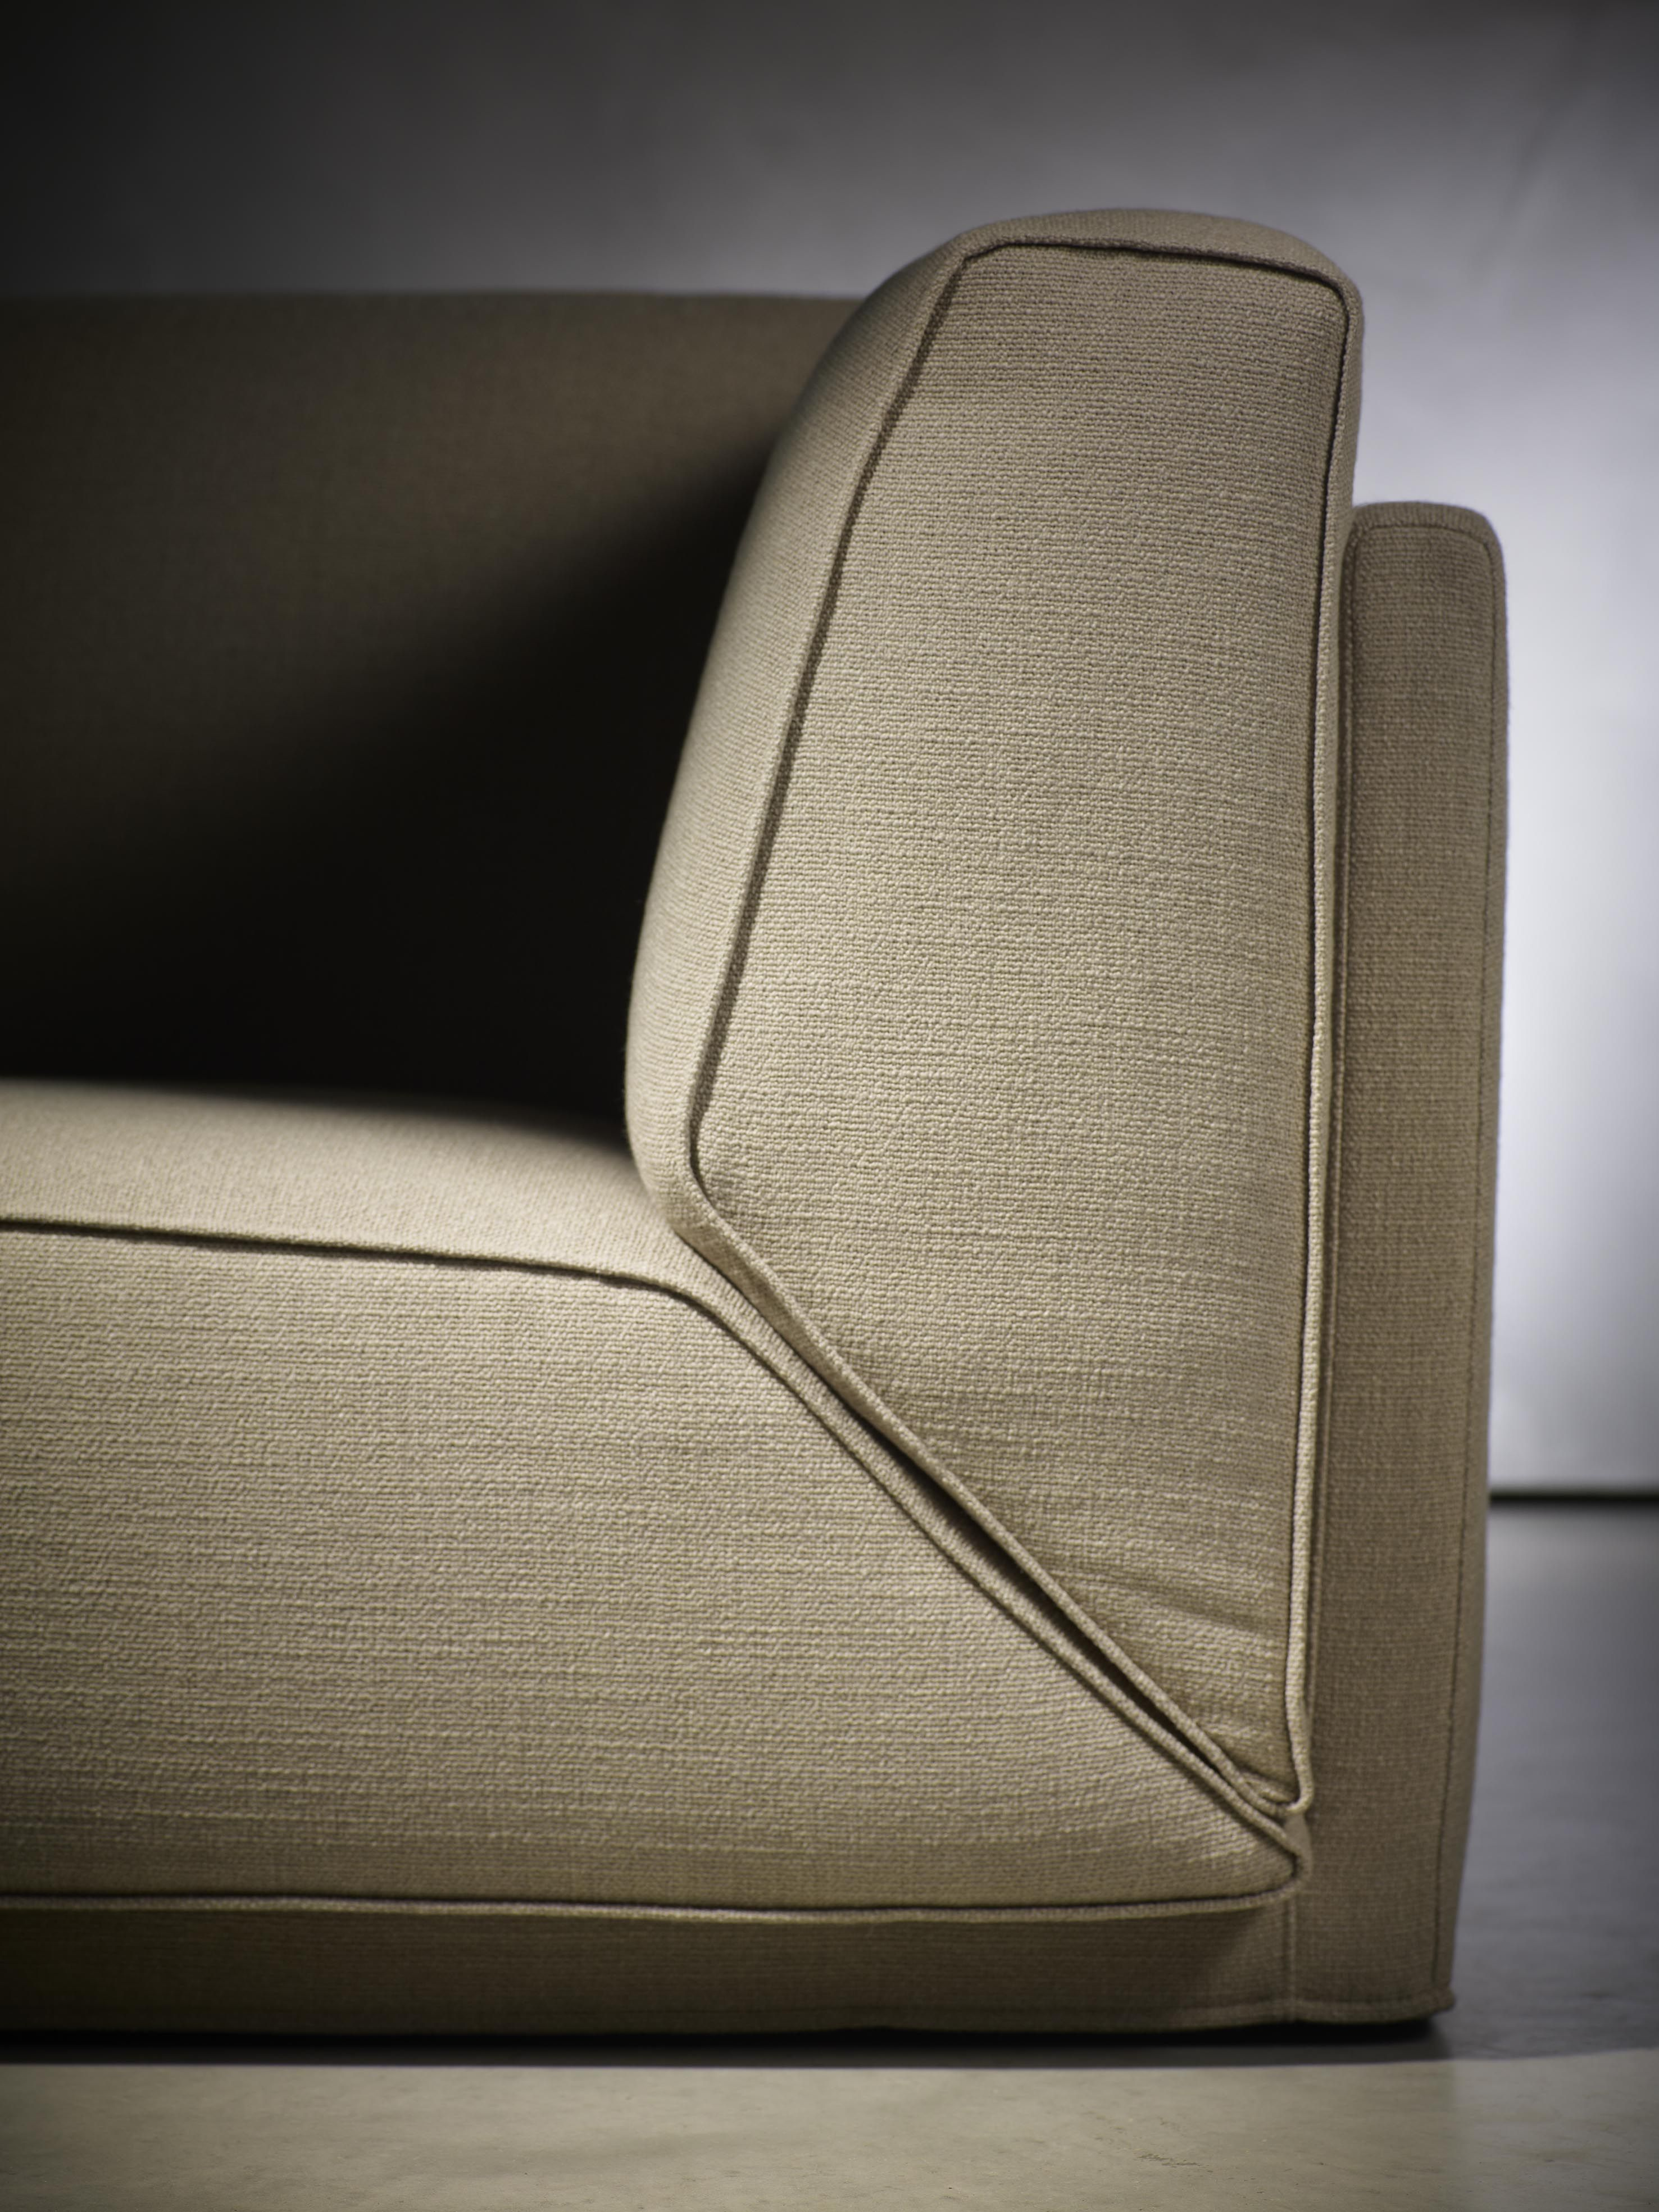 Piet Boon Styling by Karin Meyn | Piet Boon Collection furniture - DOUTZEN sofa close up